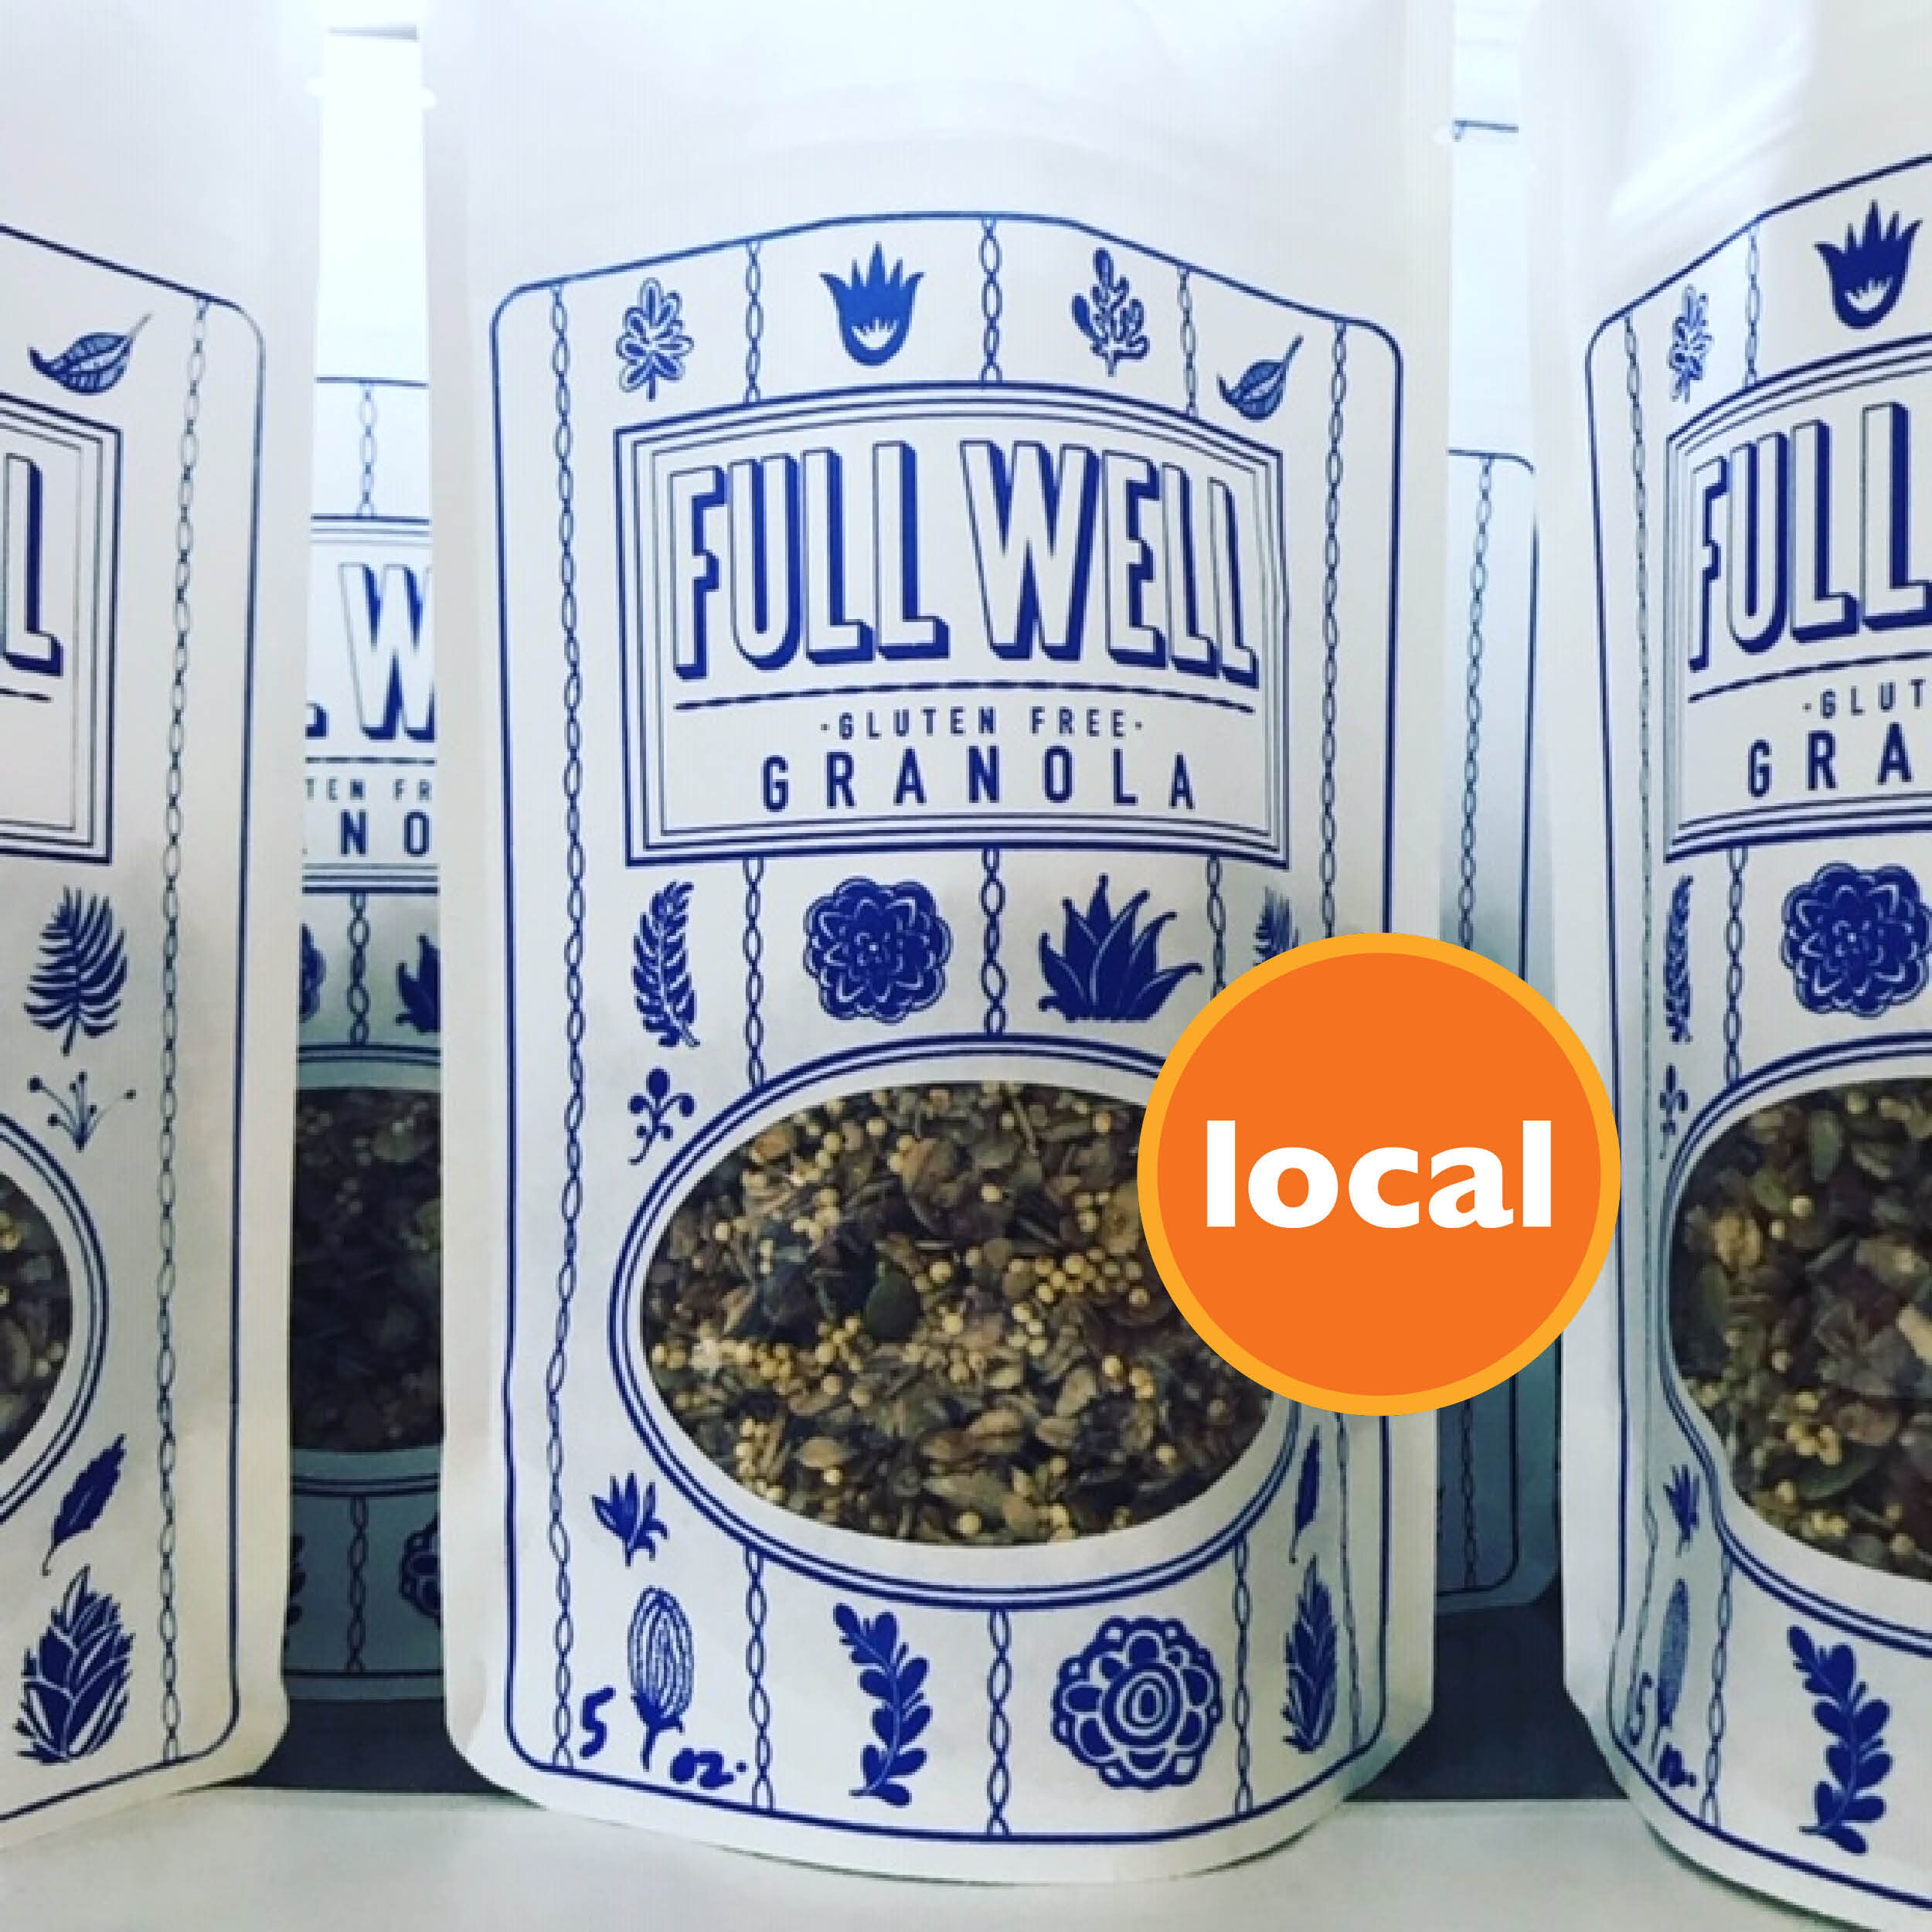 Longtime co-op owner, Kendra Marable, has made a name for herself as an artist, a business owner, and now, a local producer of gluten free granola. Each batch is handmade with care and the bags are screenprinted by Marable. Eat well. Feel well.  FULL WELL.